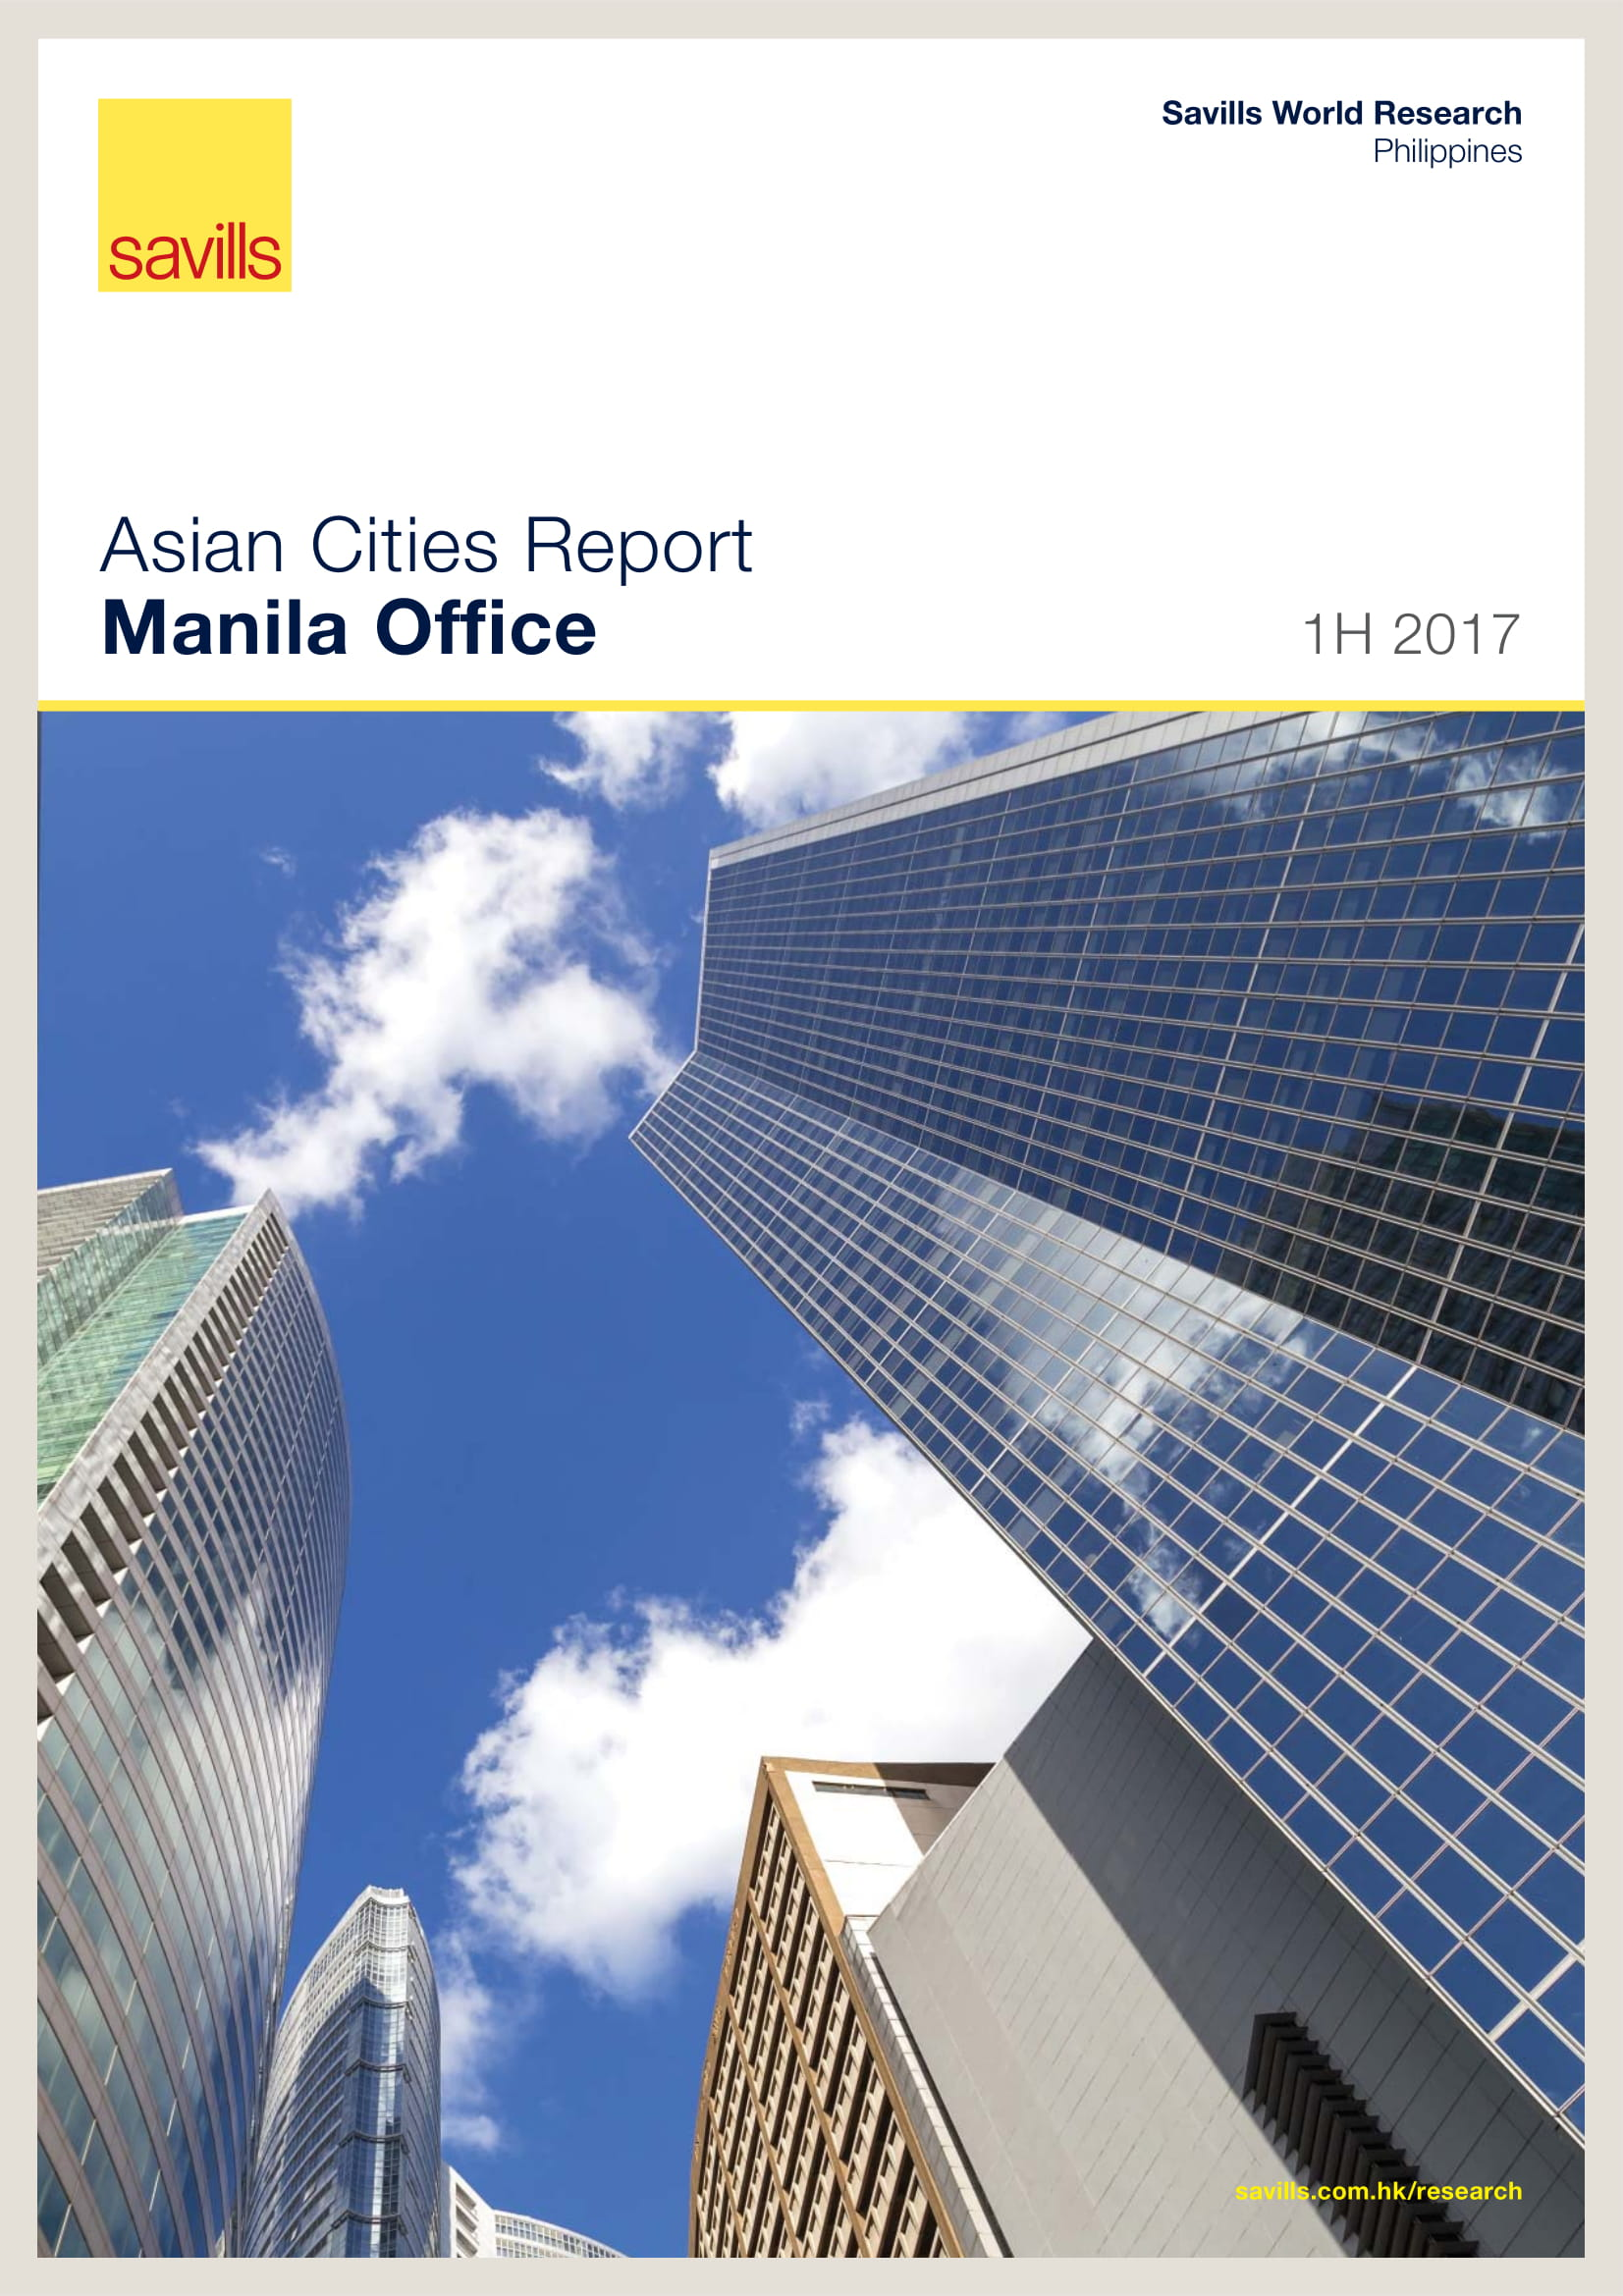 Asian Cities Report Manila Office 1H 2017